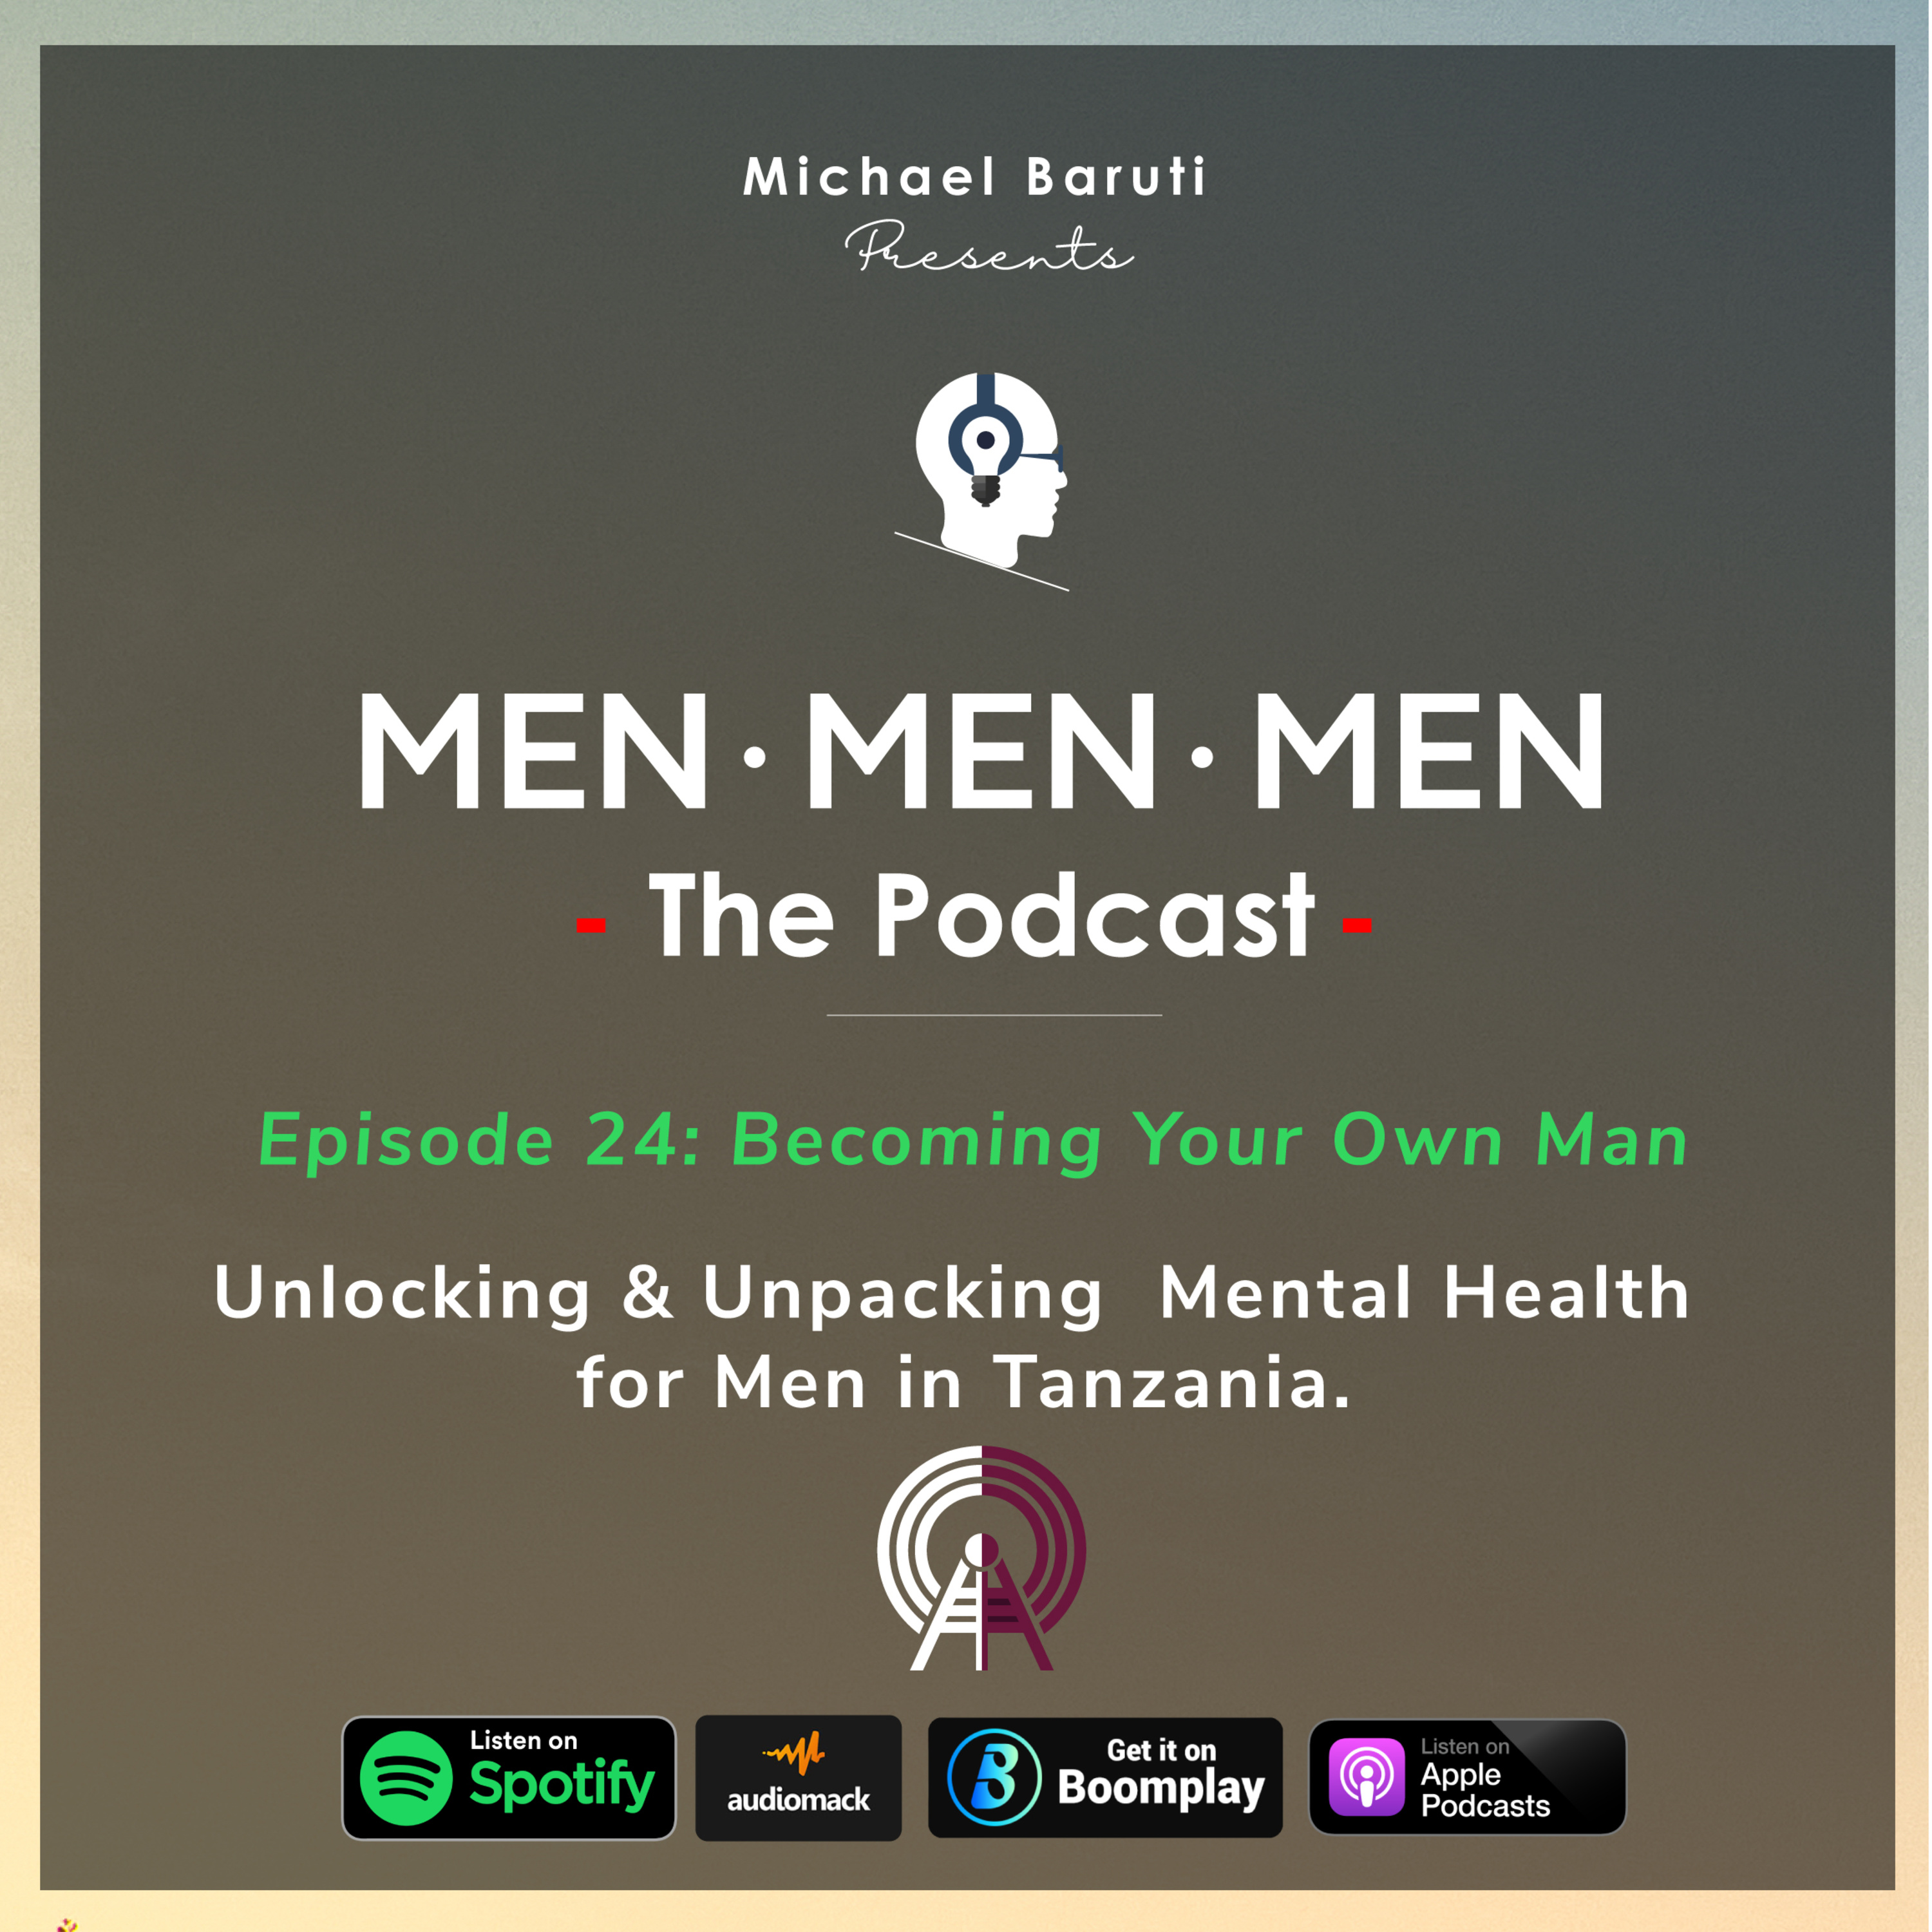 Men The Podcast - Ep - 23 - Becoming Your Own Man